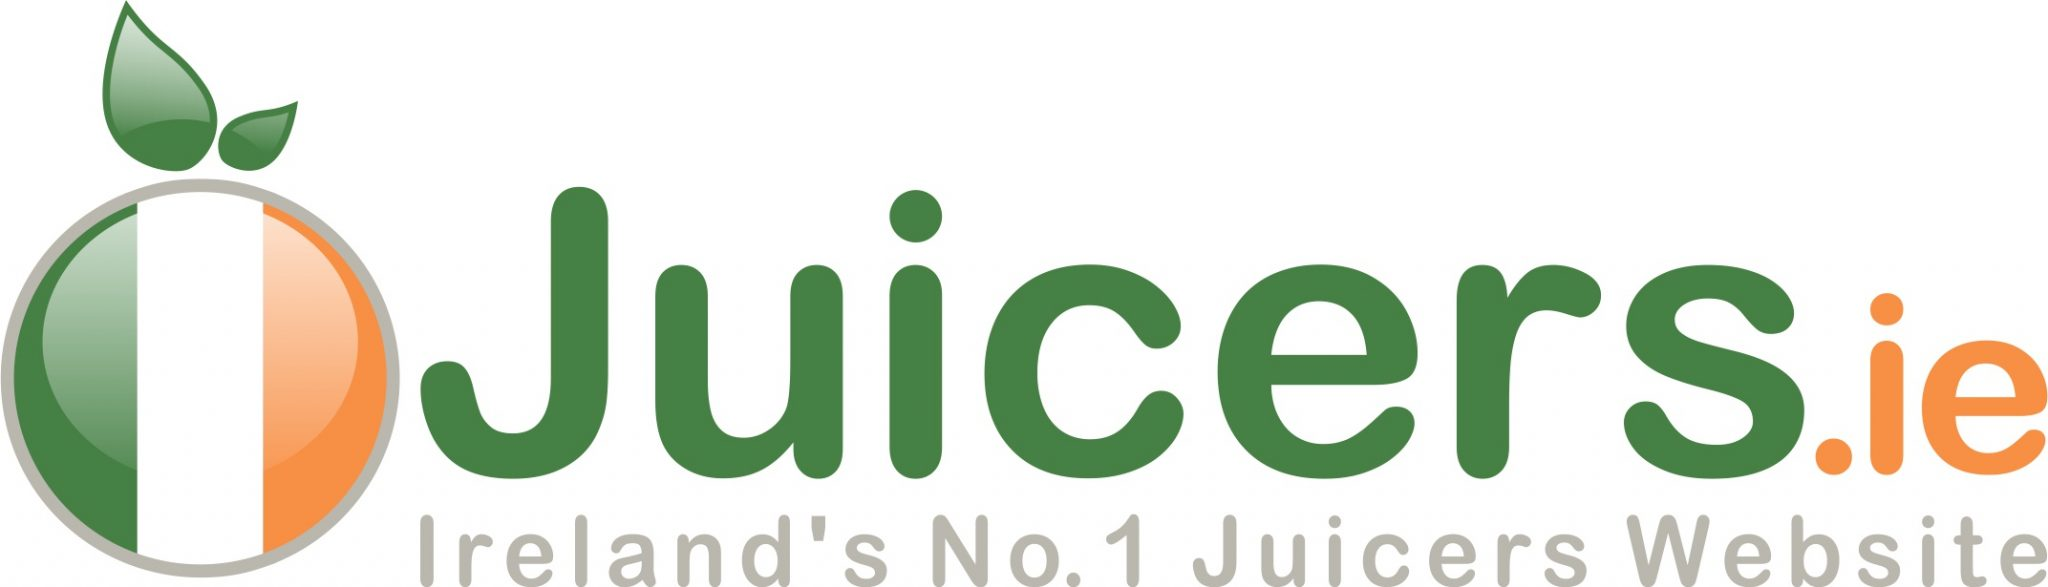 food processors ireland juicers online